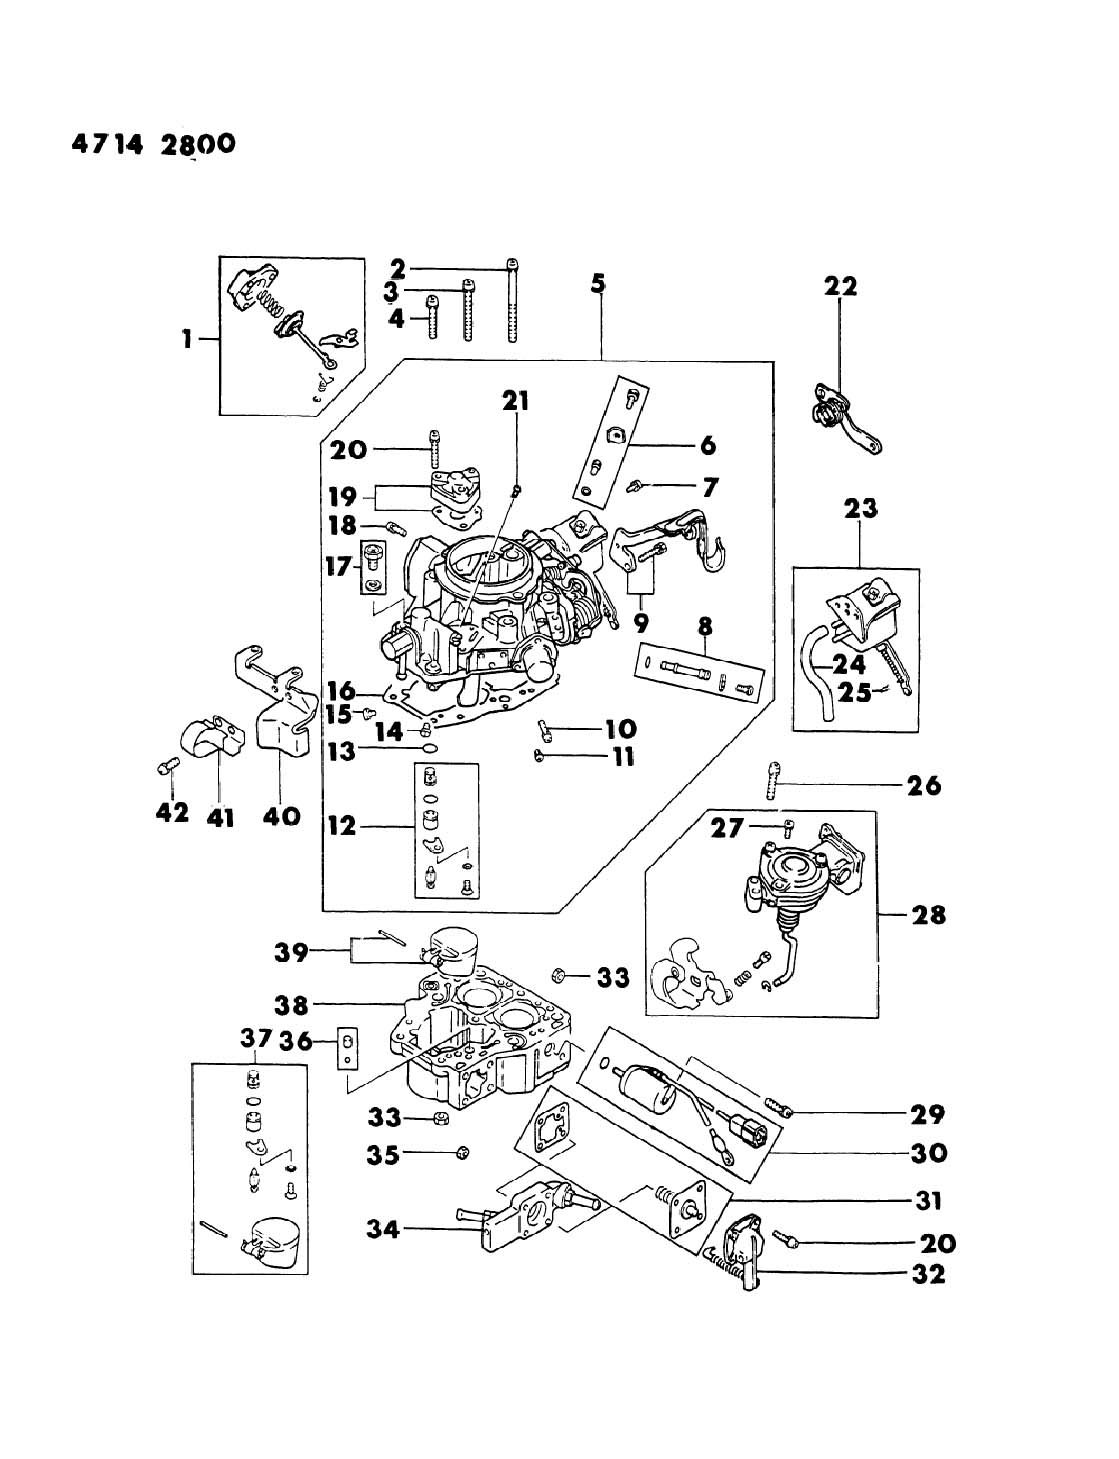 1984 toyota 22r fuse box diagram  toyota  auto wiring diagram